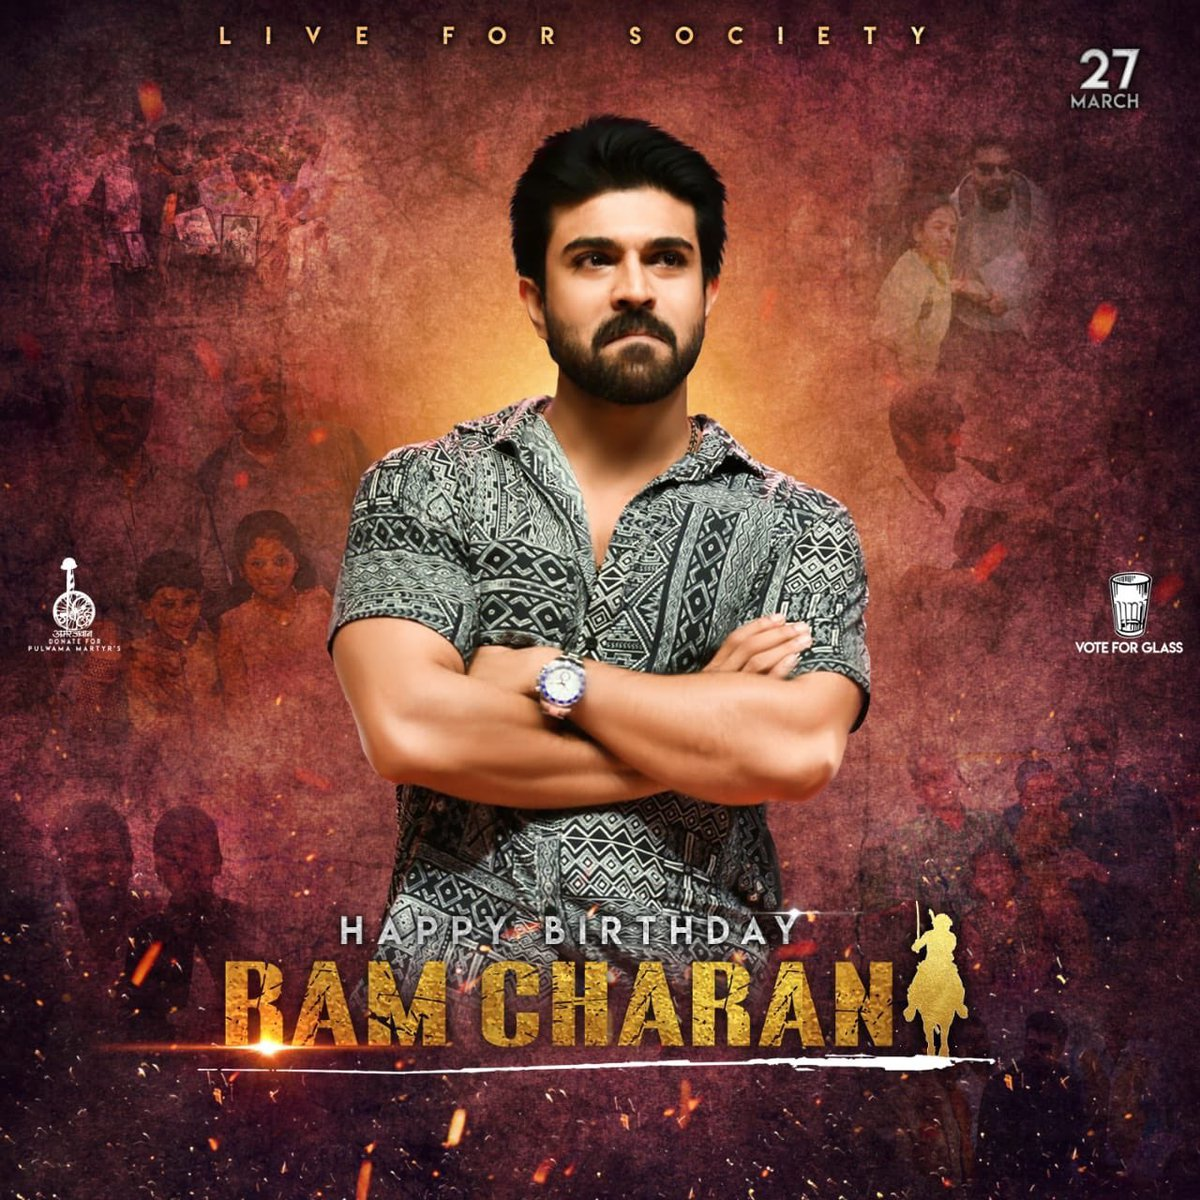 A cool common DP for #MegaPowerStar #RamCharan&#39;s upcoming bday..  RAMCHARAN BDAY CDP<br>http://pic.twitter.com/o9Z8sy3mPE